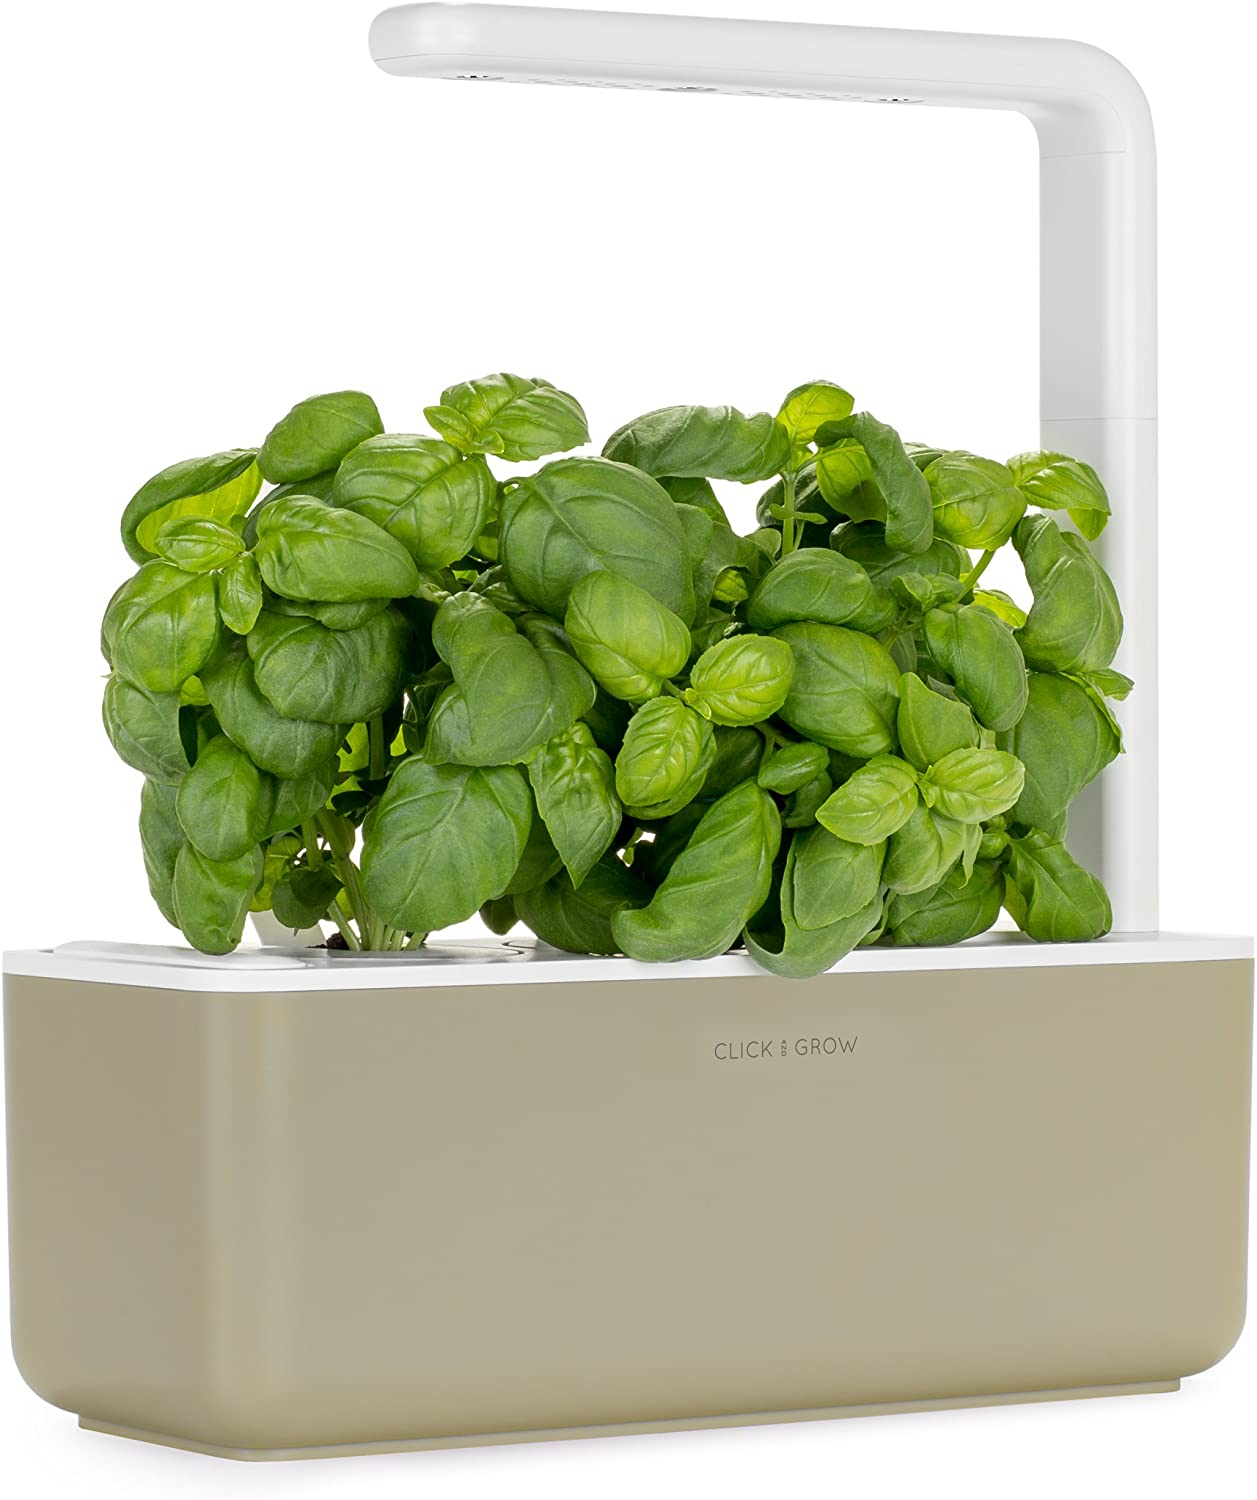 Click & Grow Smart Garden with 3 Basil Cartridges, Barro